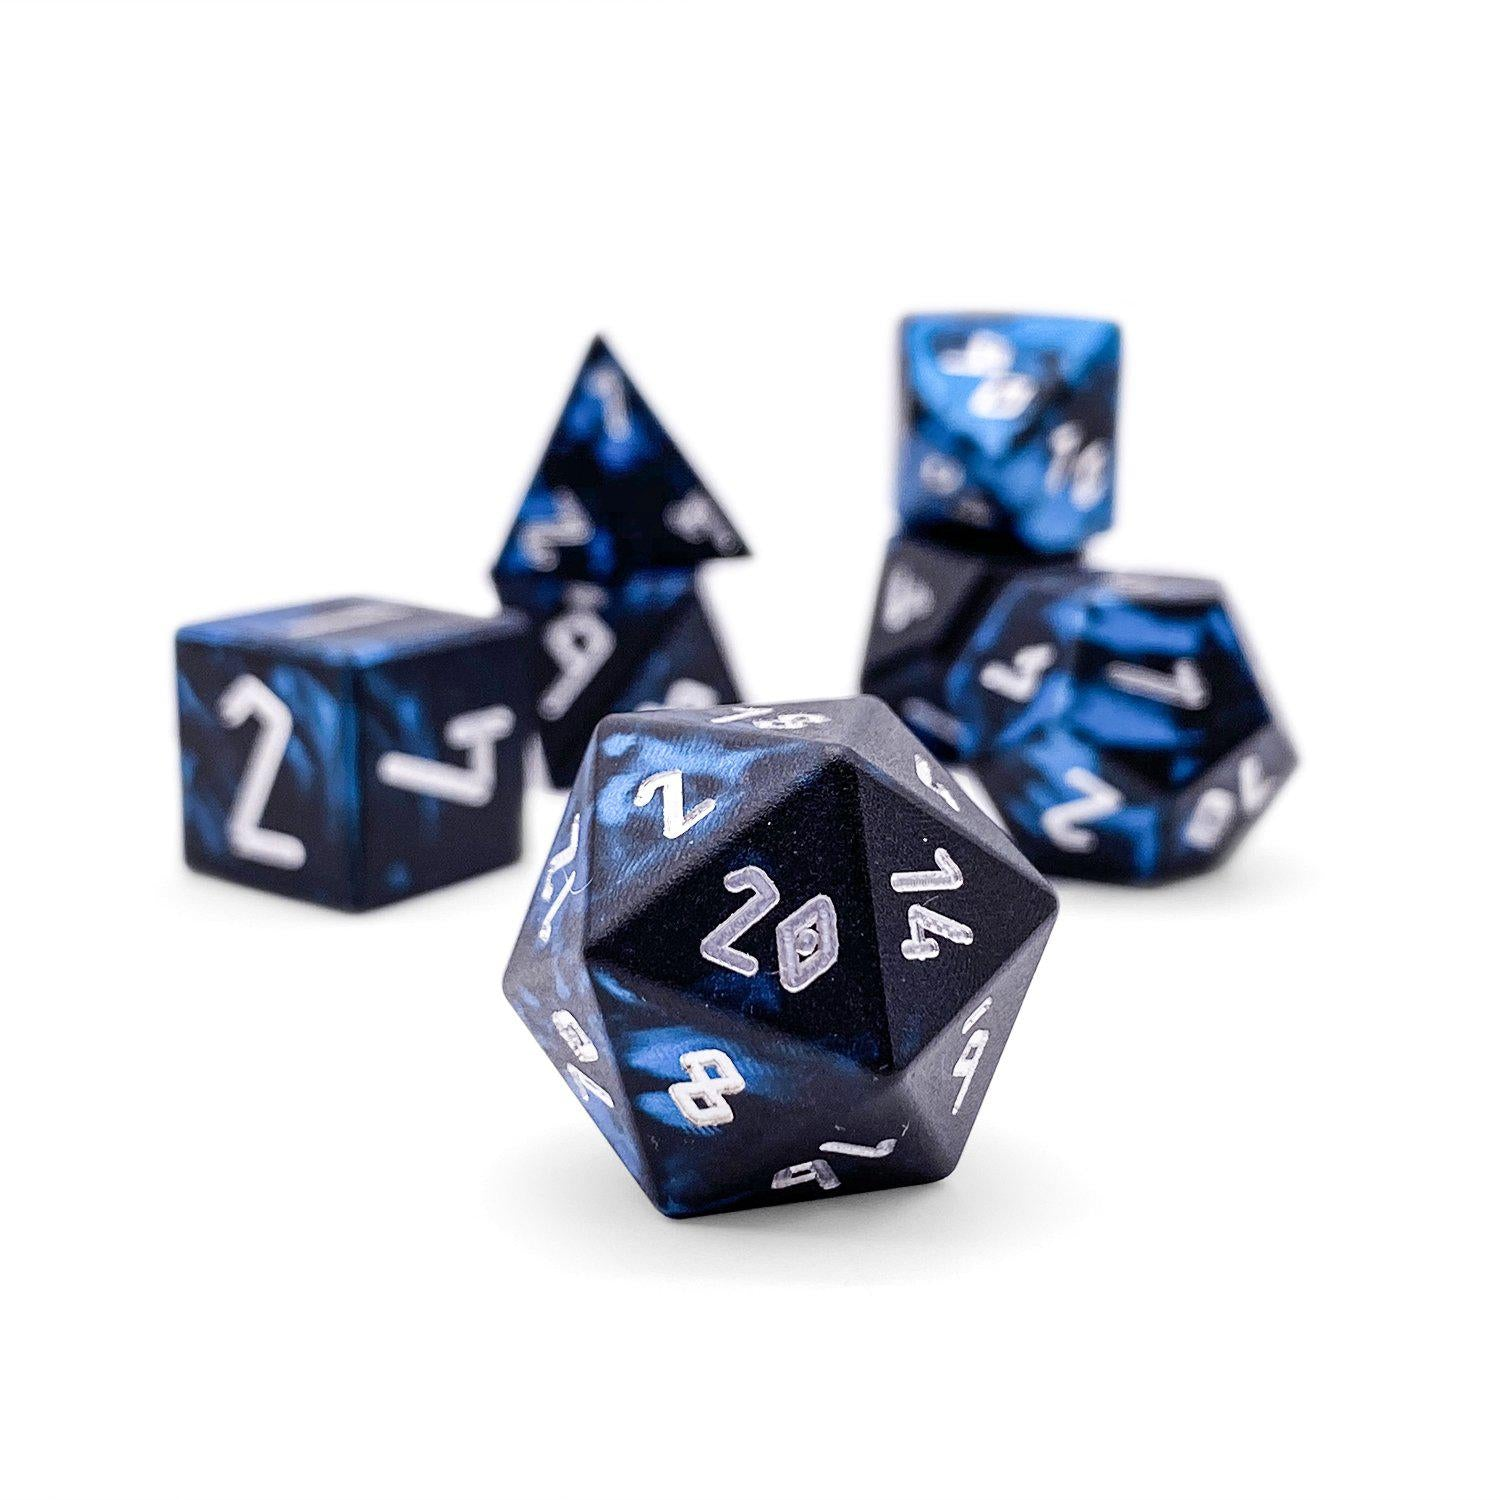 Willow O' The Wisp - Wondrous Dice - Norse Font - Set of 7 RPG Dice by Norse Foundry Precision Polyhedral Dice Set